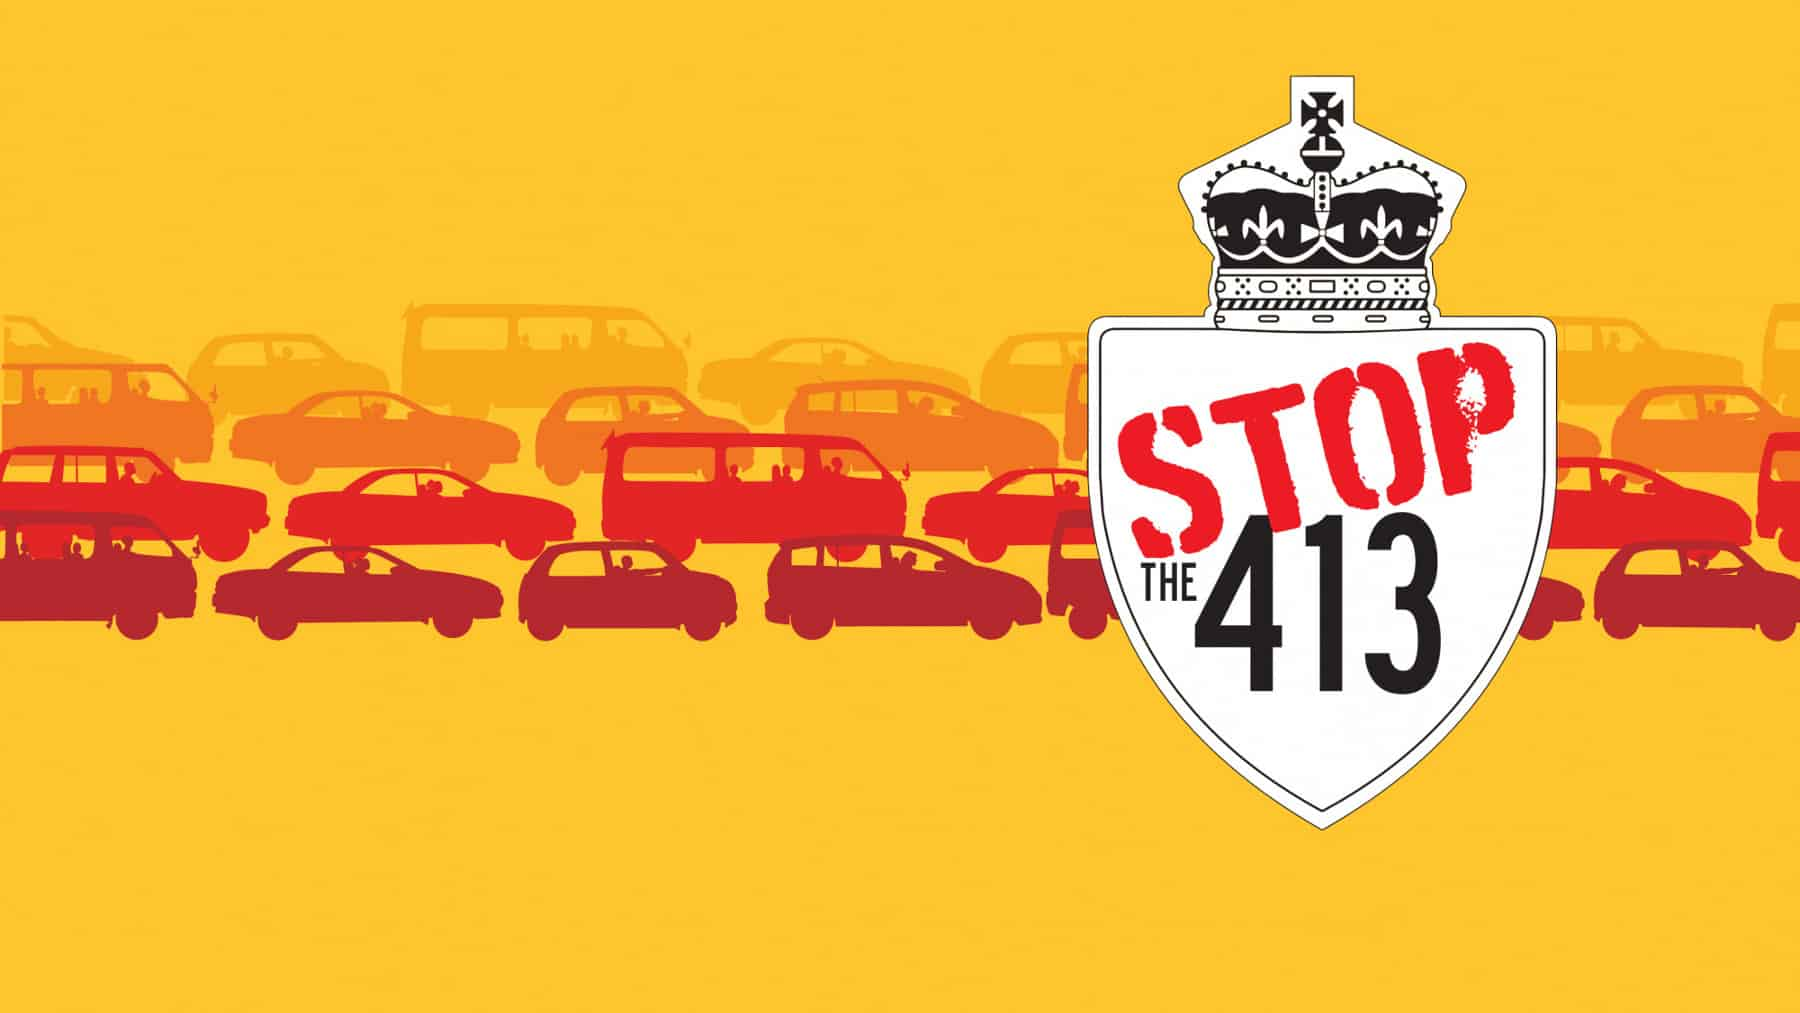 Stop the 413